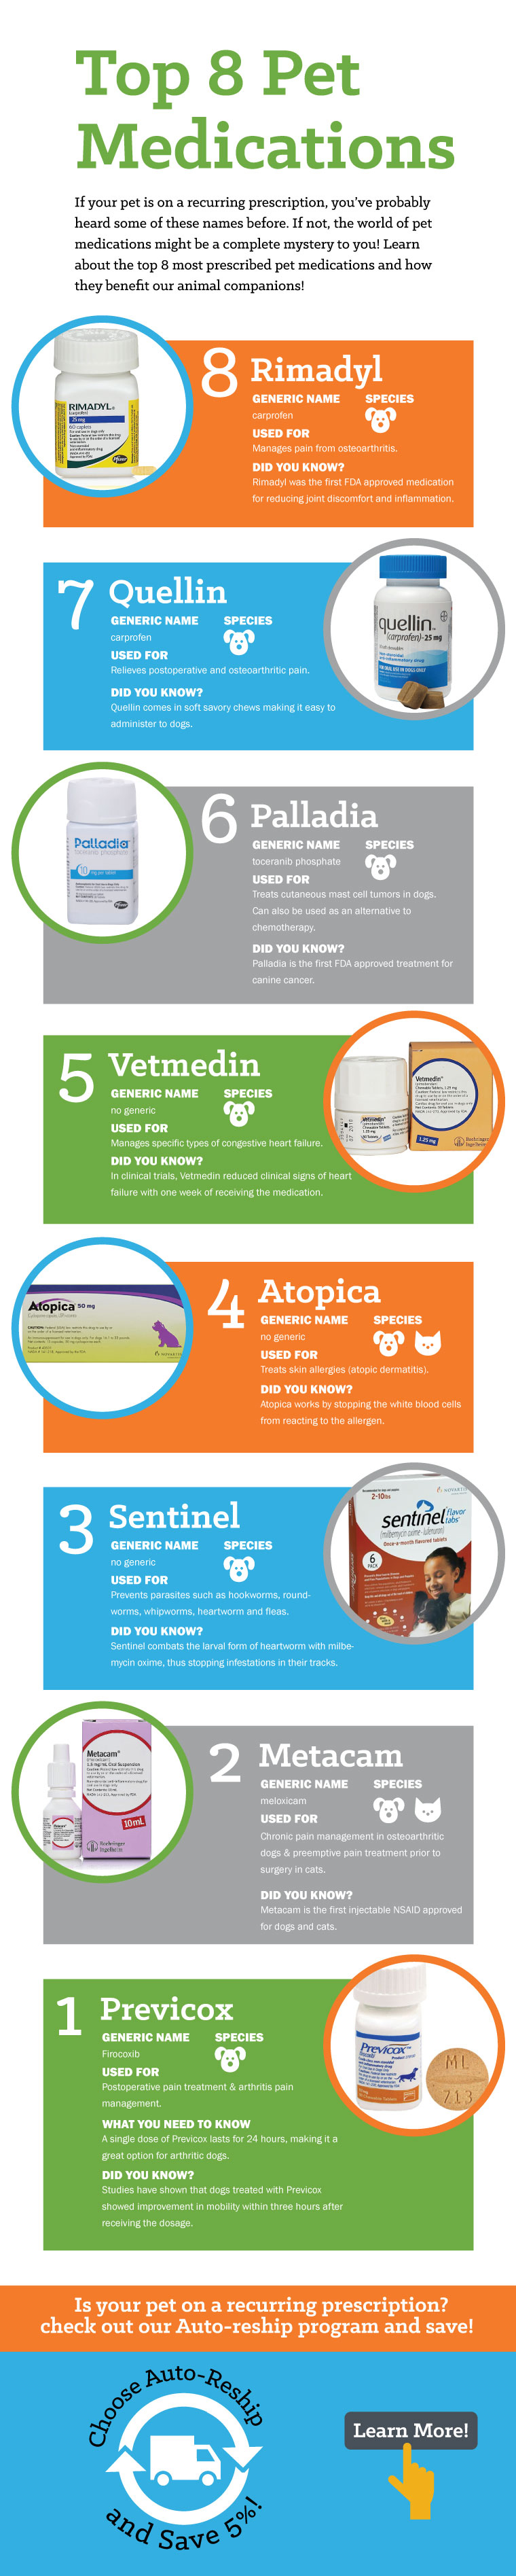 Top Pet Medications Pet meds, Pet health, Pets